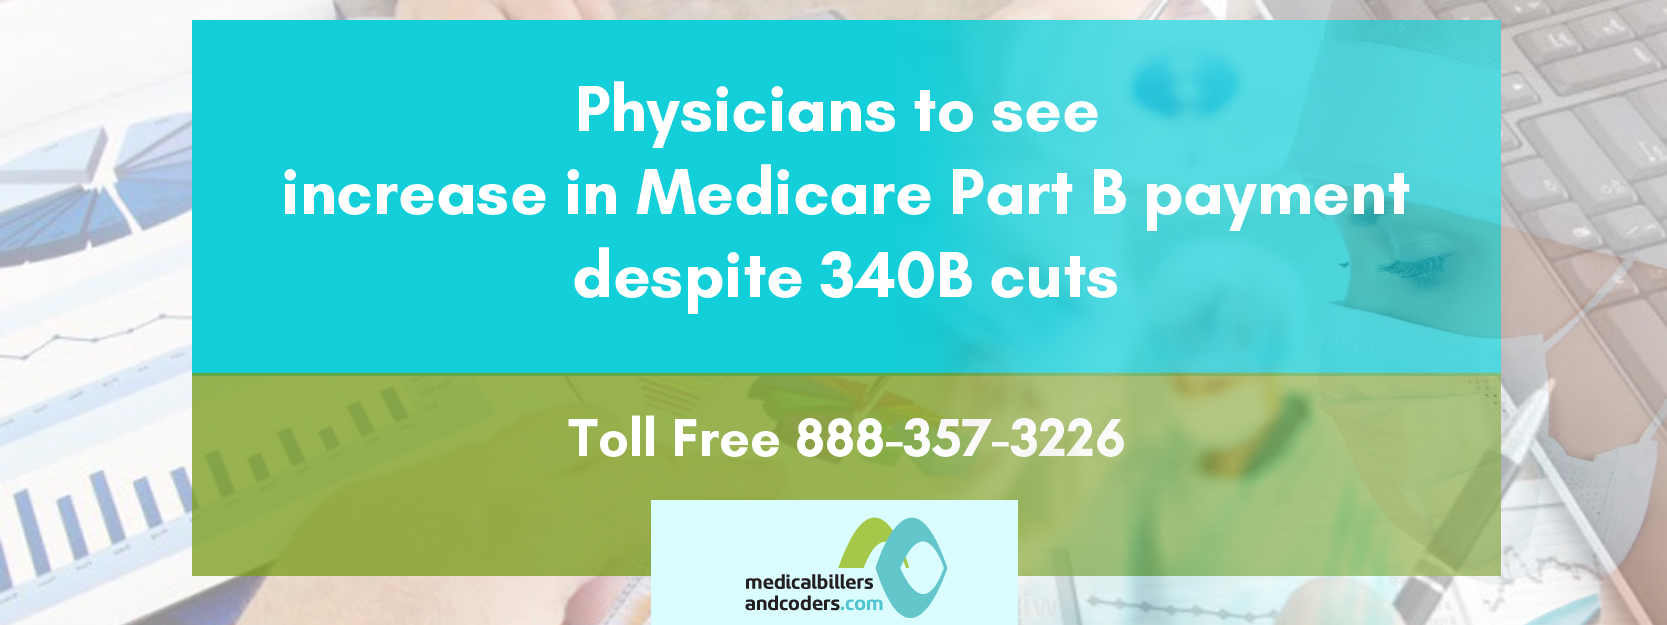 Physicians To See Increase In Medicare Part B Payment Despite 340B Cuts